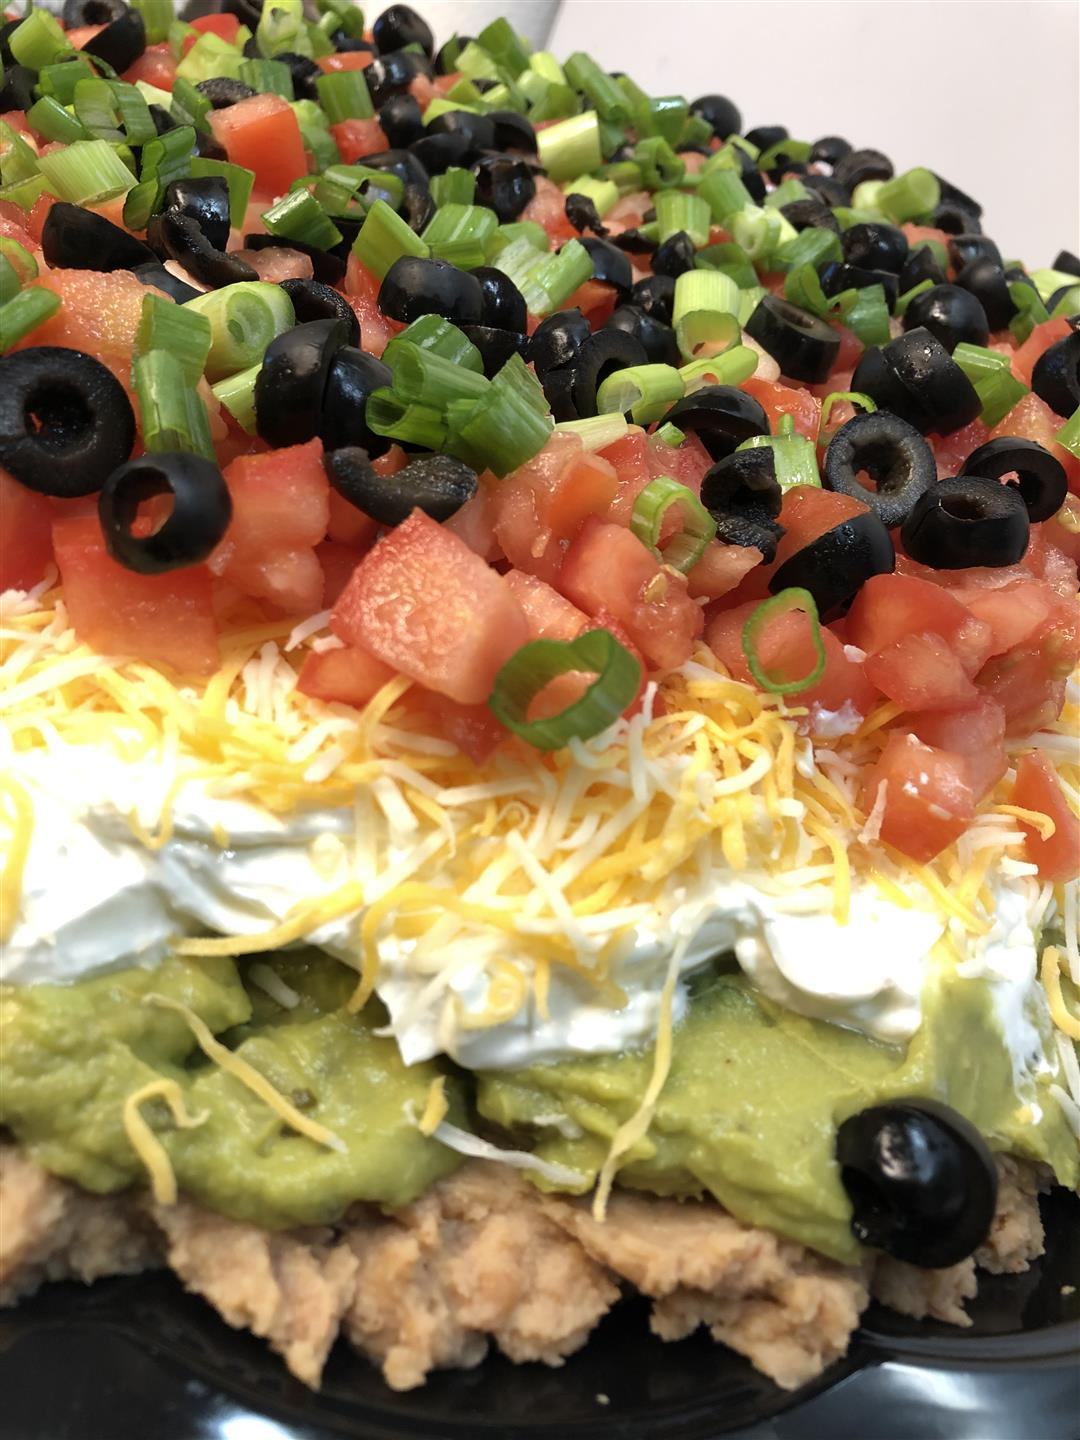 7 layer dip with refried beans, guacamole, sour cream, cheese, tomato, olives and green onions